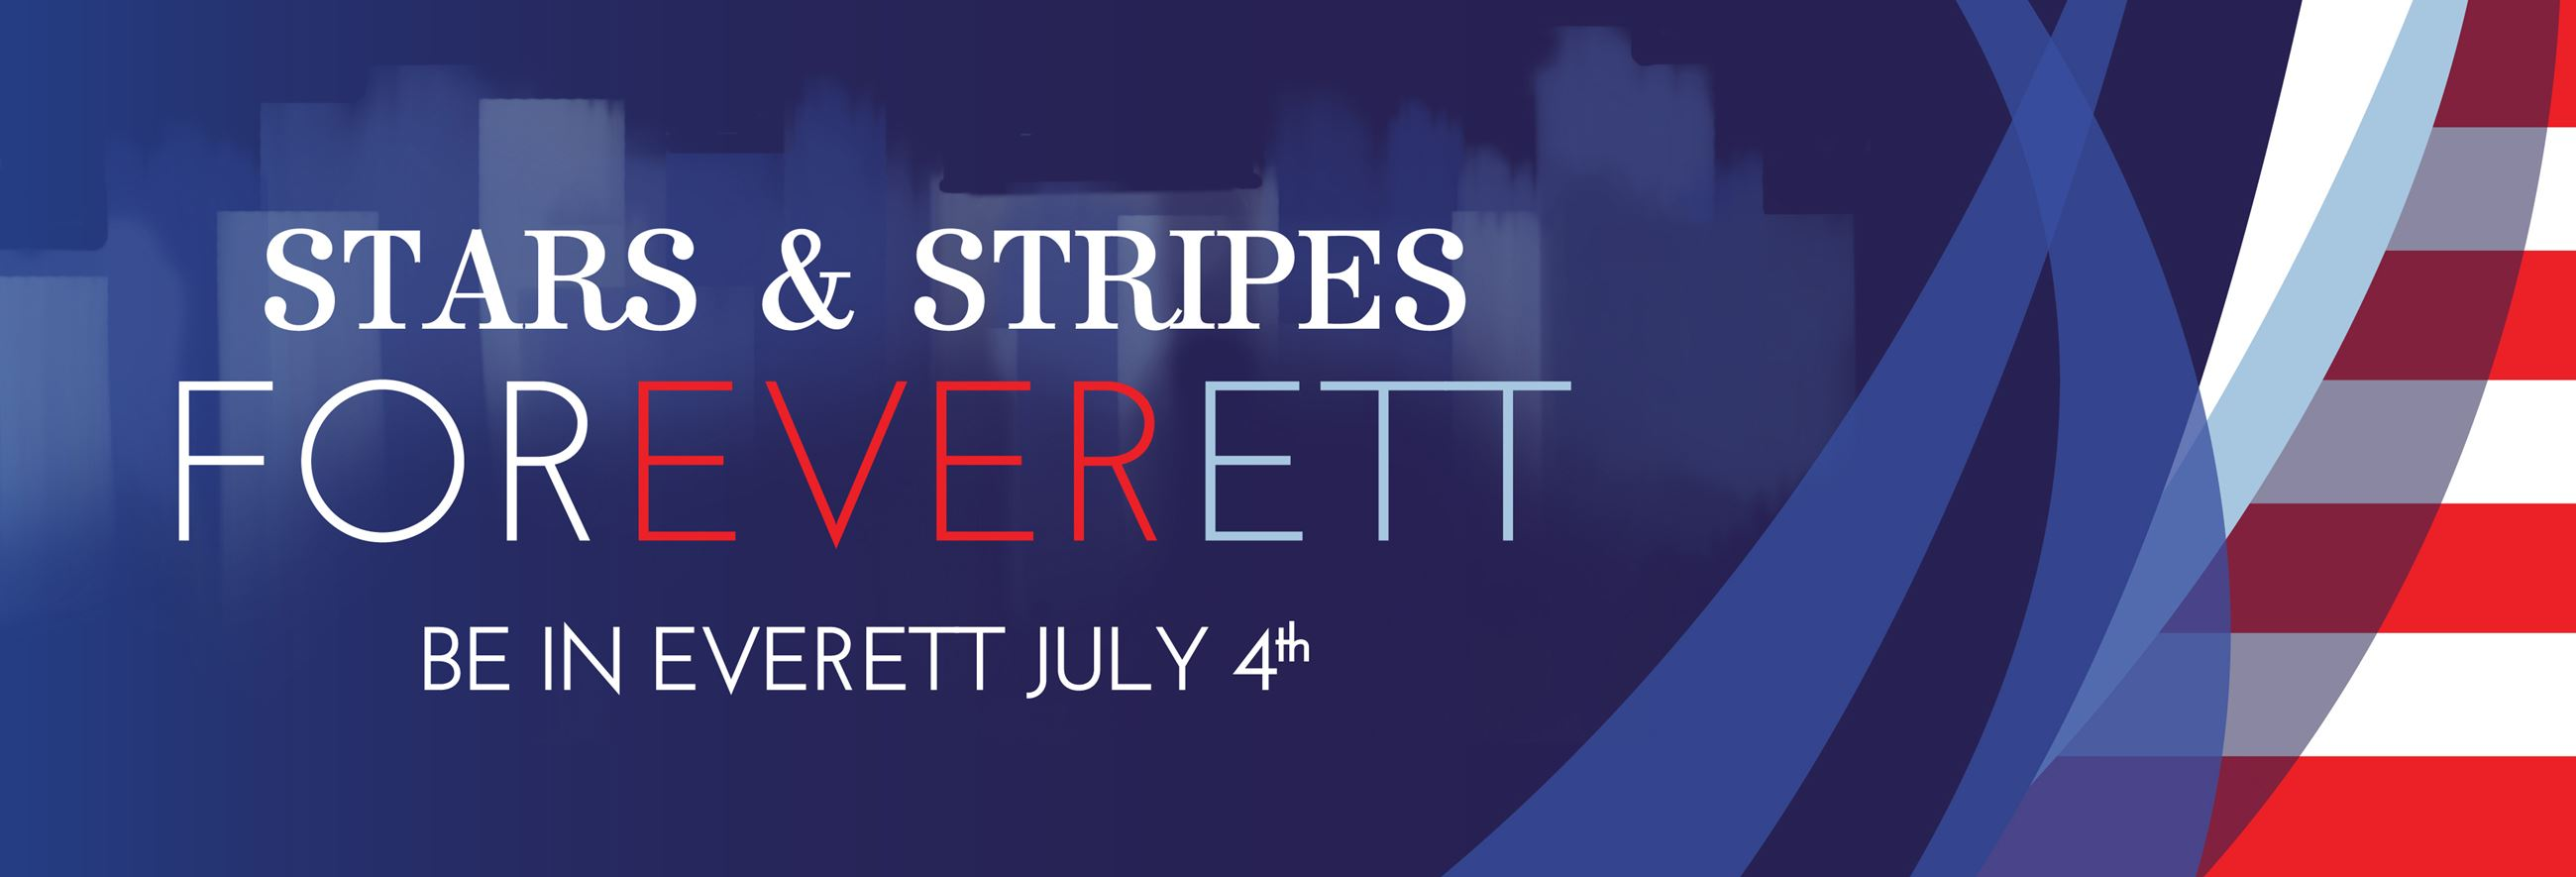 Be in Everett on July 4th